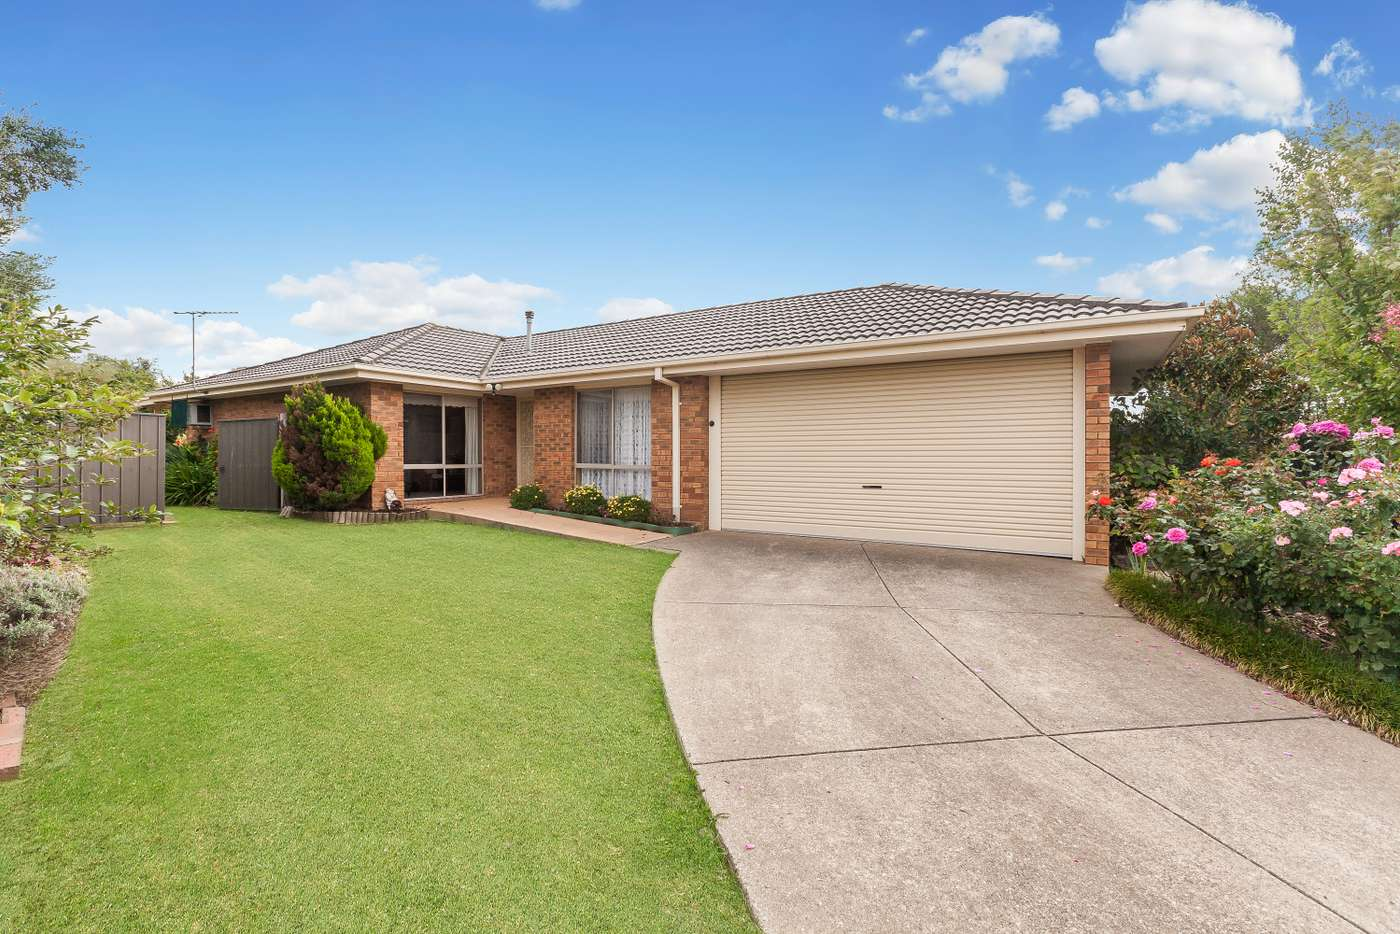 Main view of Homely house listing, 54 Davenport Drive, Sunbury VIC 3429